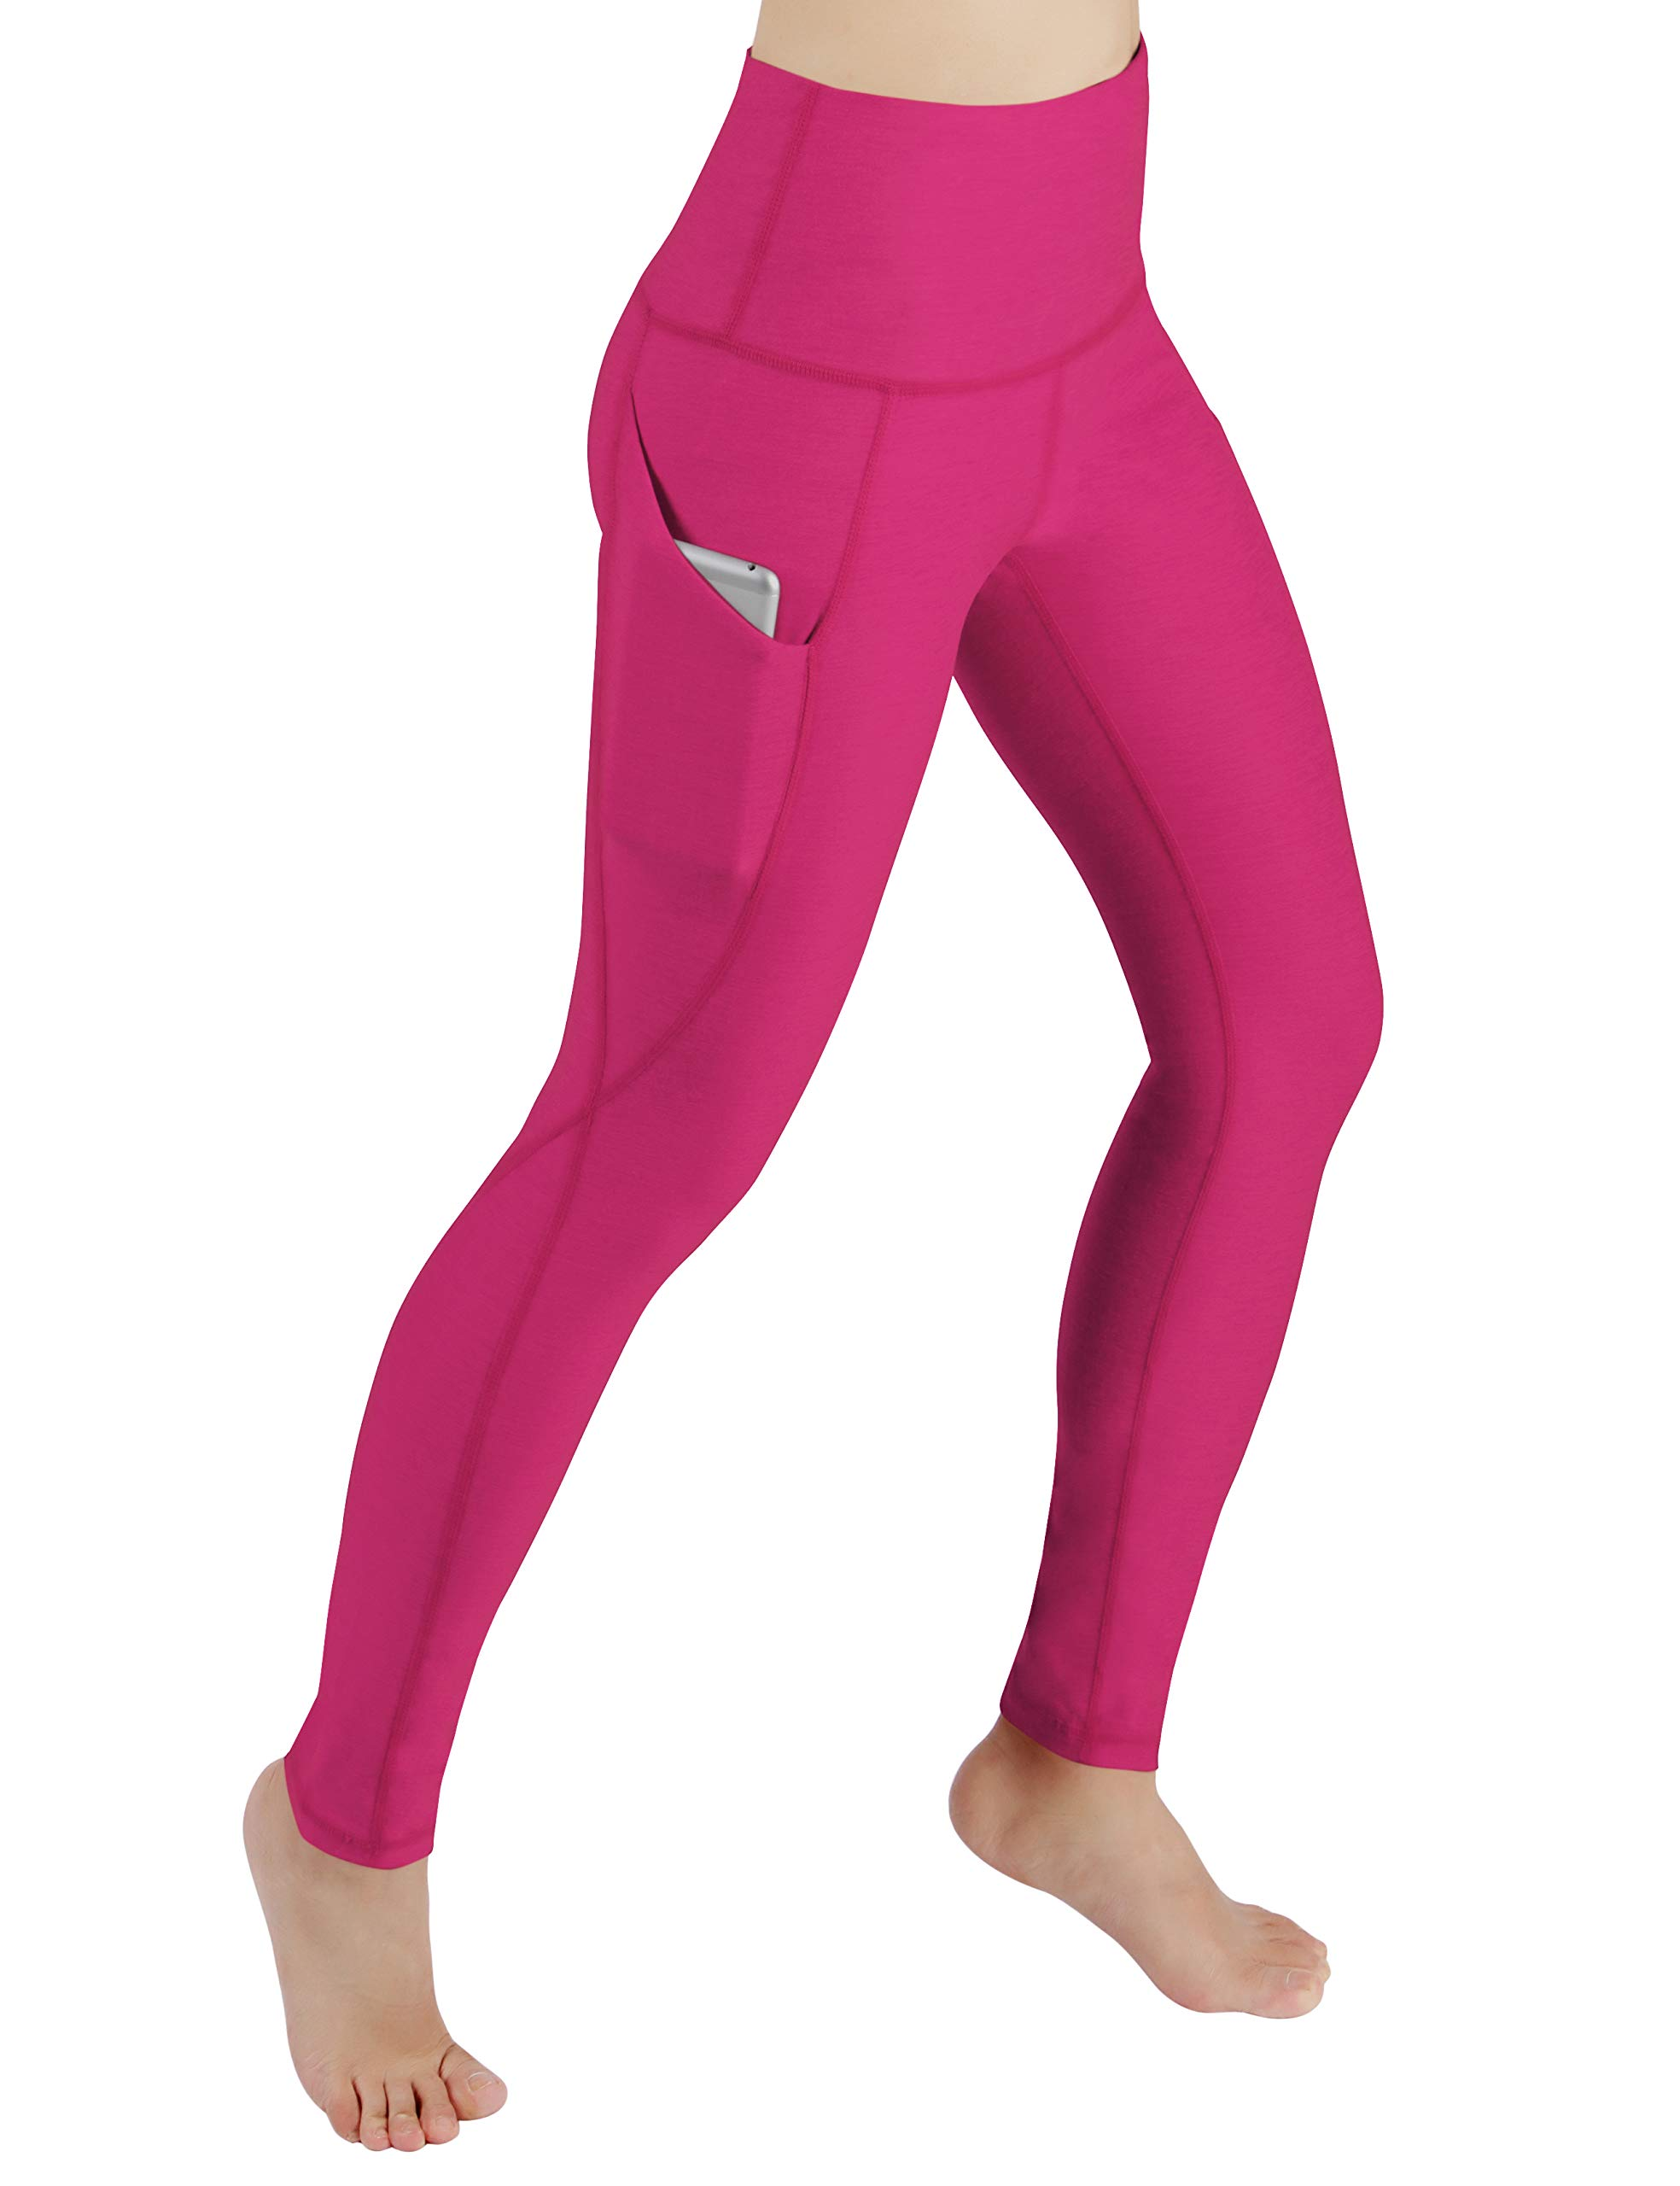 ODODOS Women's High Waist Yoga Pants with Pockets,Tummy Control,Workout Pants Running 4 Way Stretch Yoga Leggings with Pockets,Fuchsia,Large by ODODOS